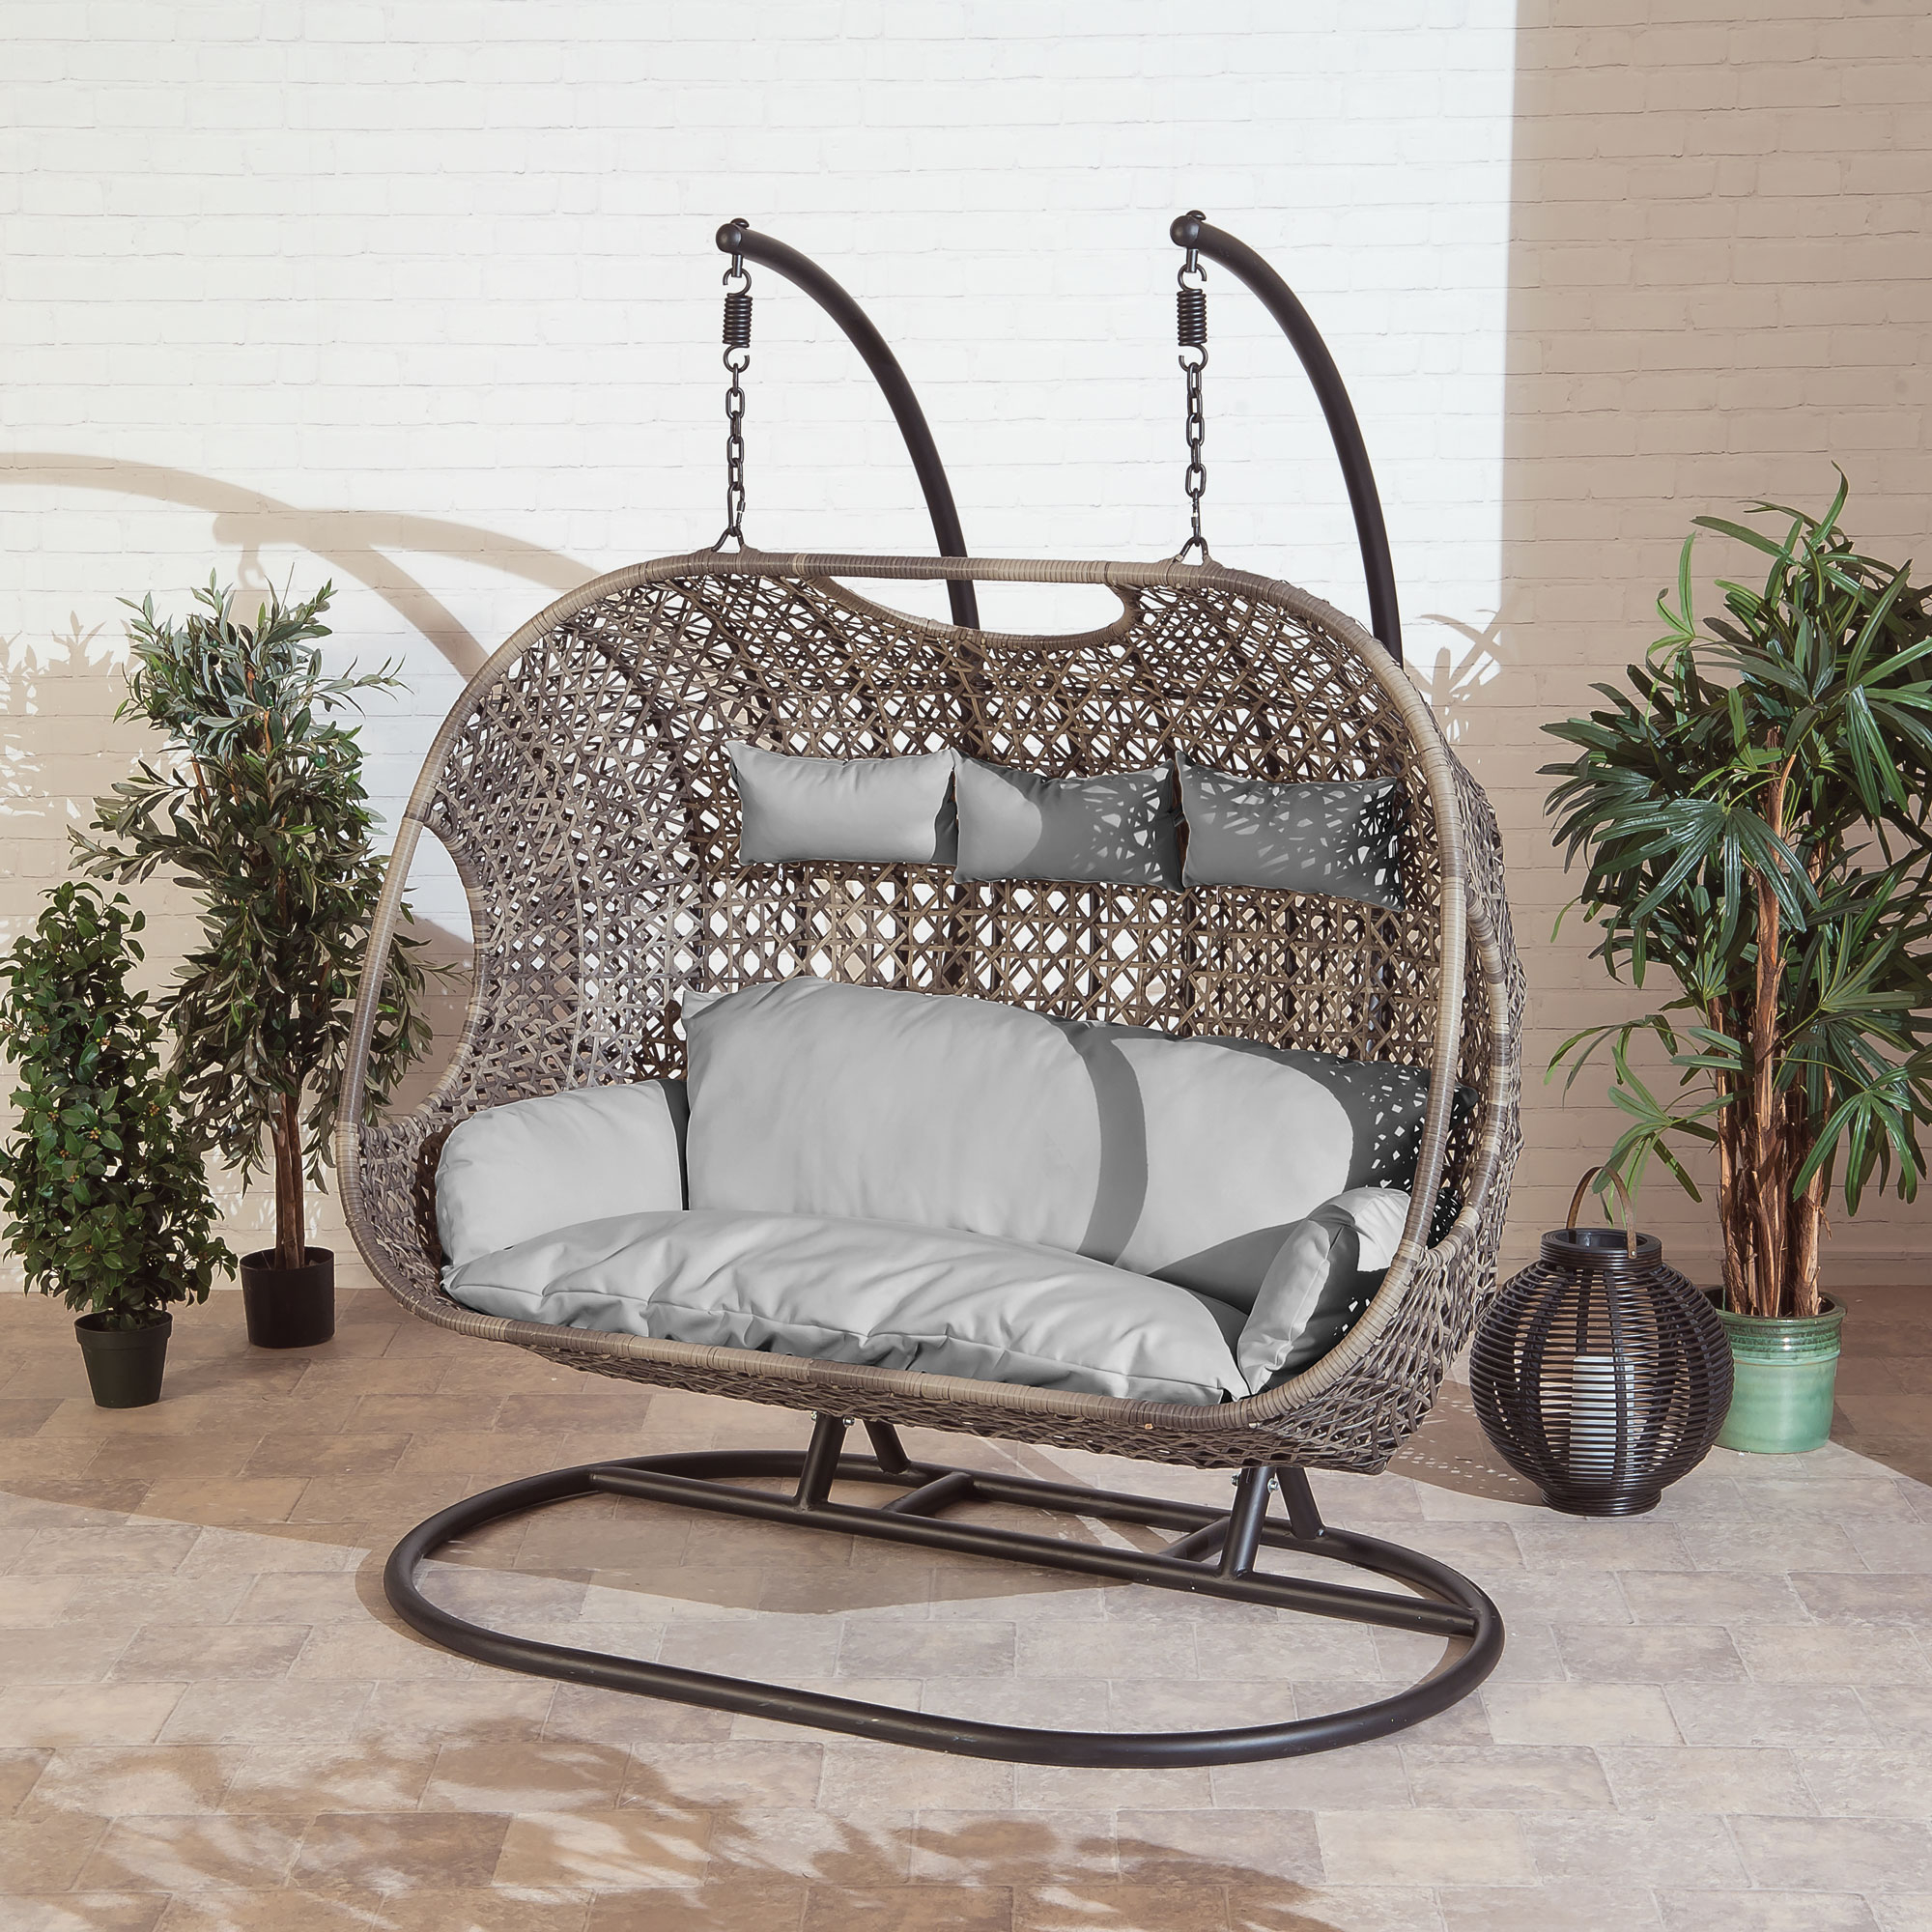 Brampton Luxury Rattan Wicker Outdoor Hanging Cocoon Egg Swing Chair with Grey Cushions (Triple)